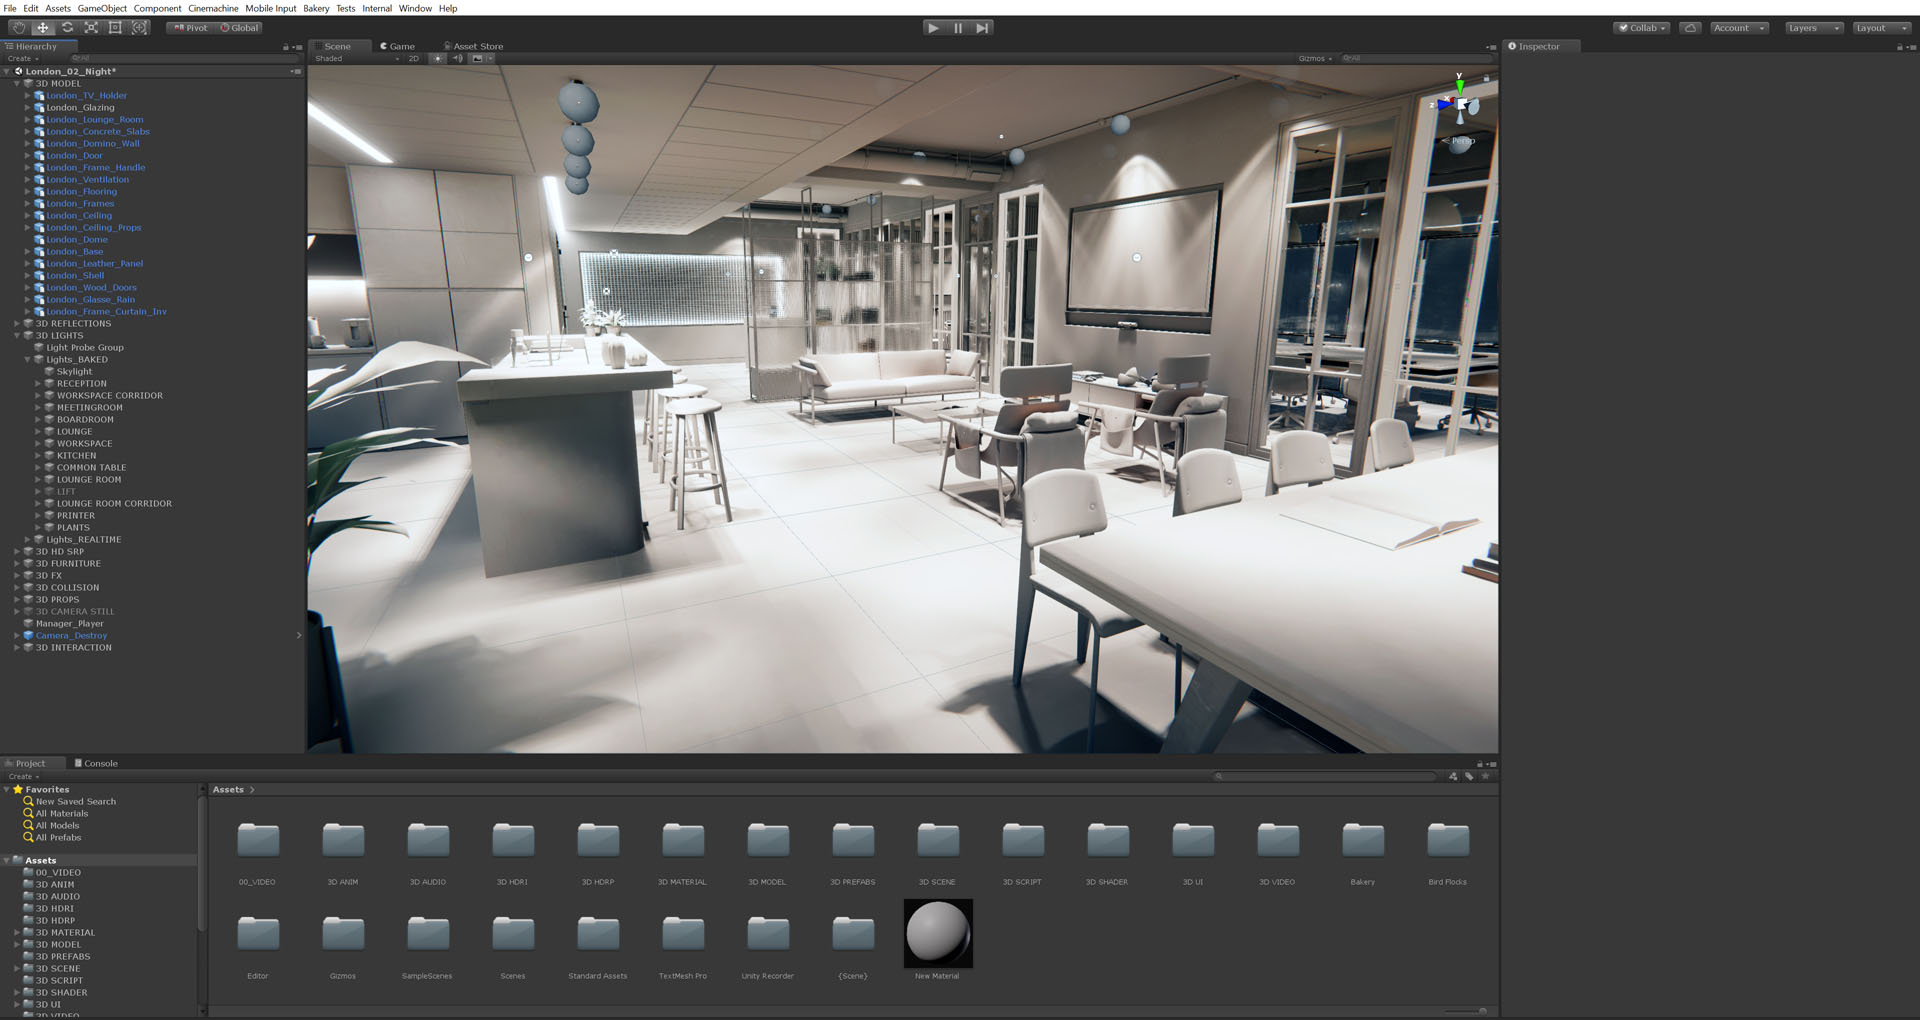 Making_of_VRE_for_ArchViz_with_Unity-light baked